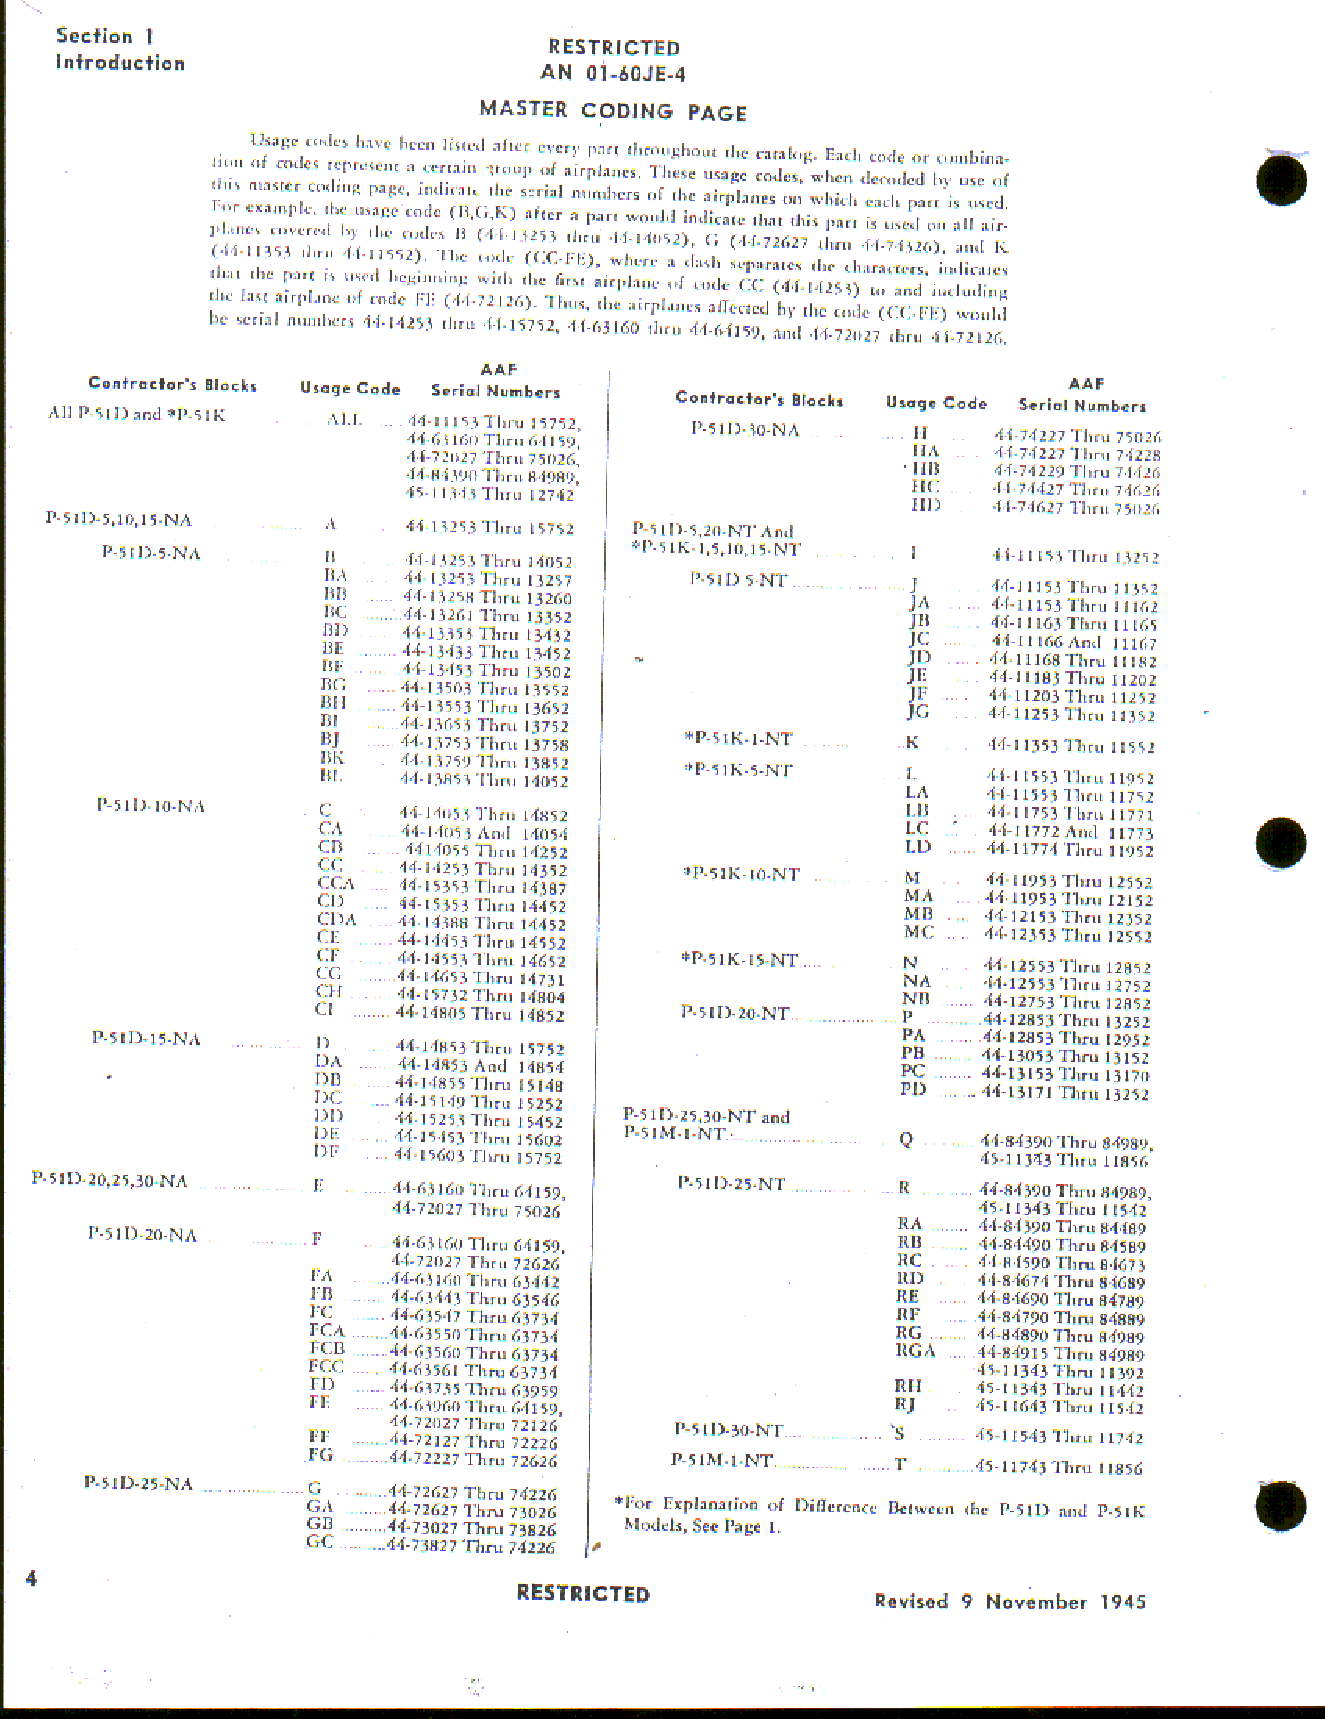 Sample page 6 from AirCorps Library document: Parts Catalog for P-51D and P-51K Aircraft